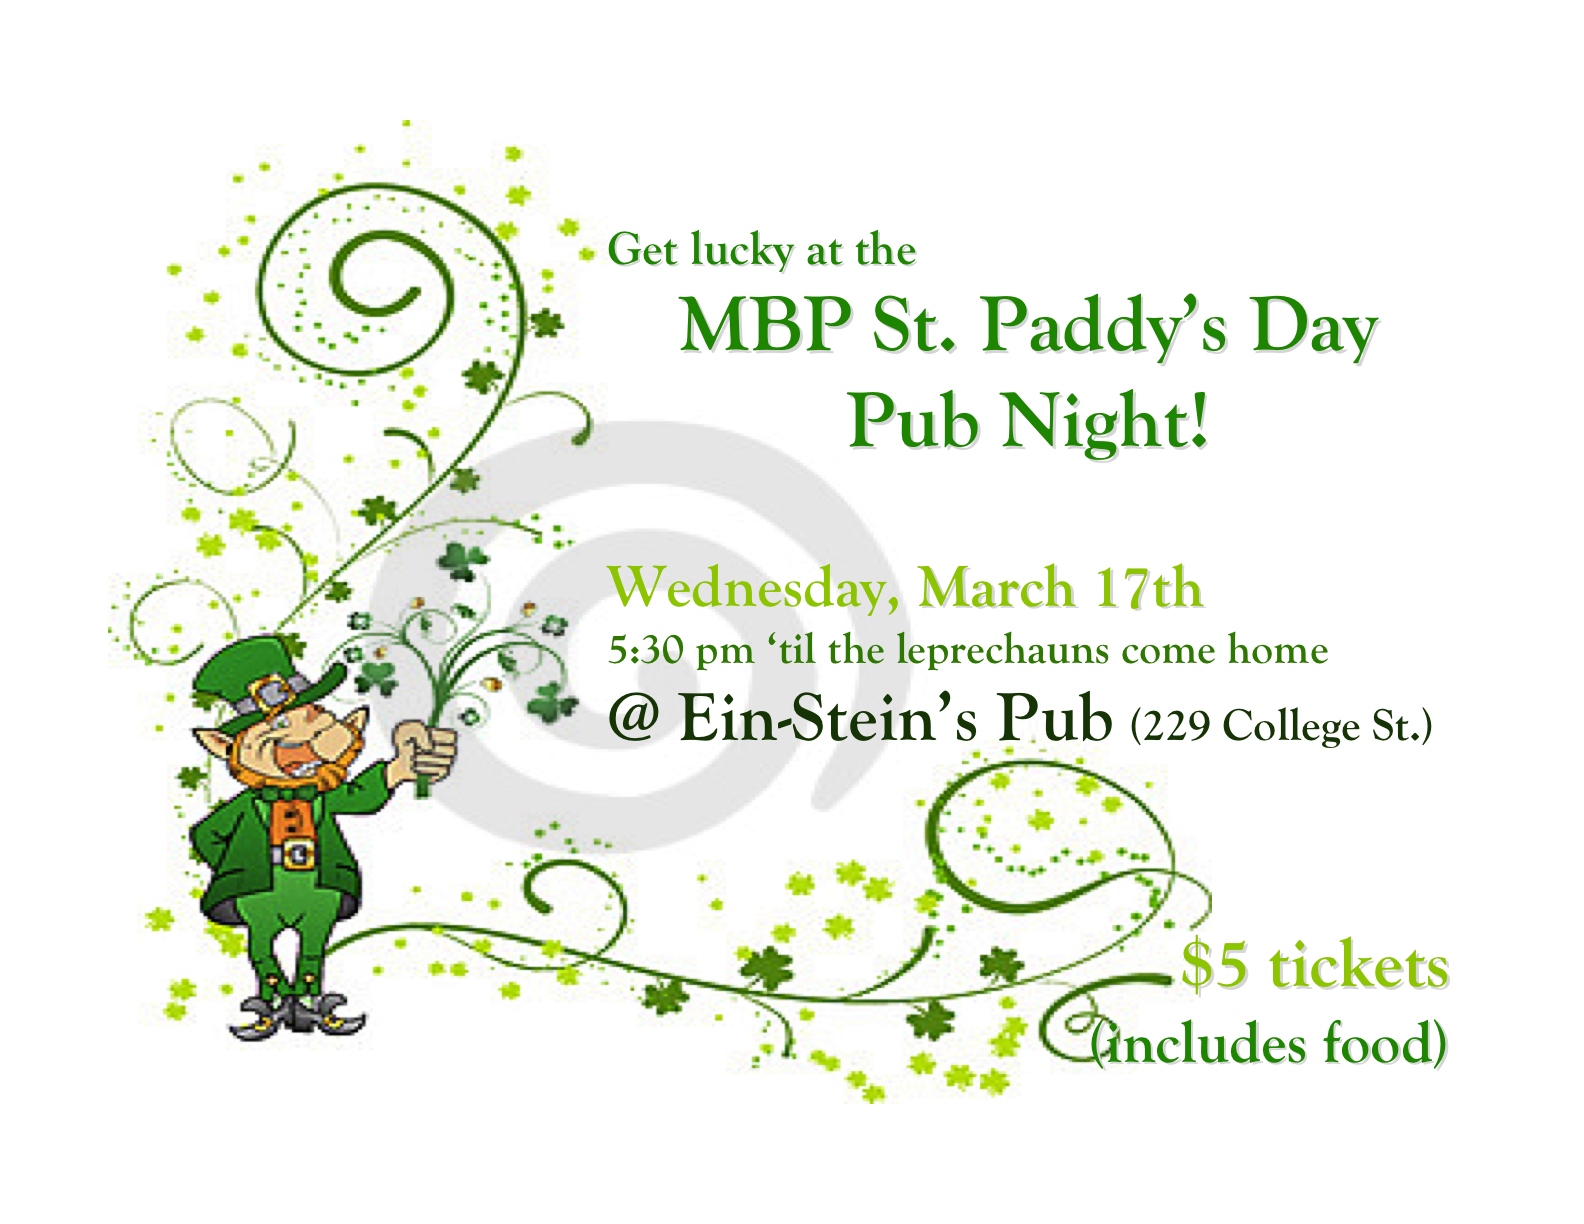 MBP-St.Paddys-Day-Pub-2010.png